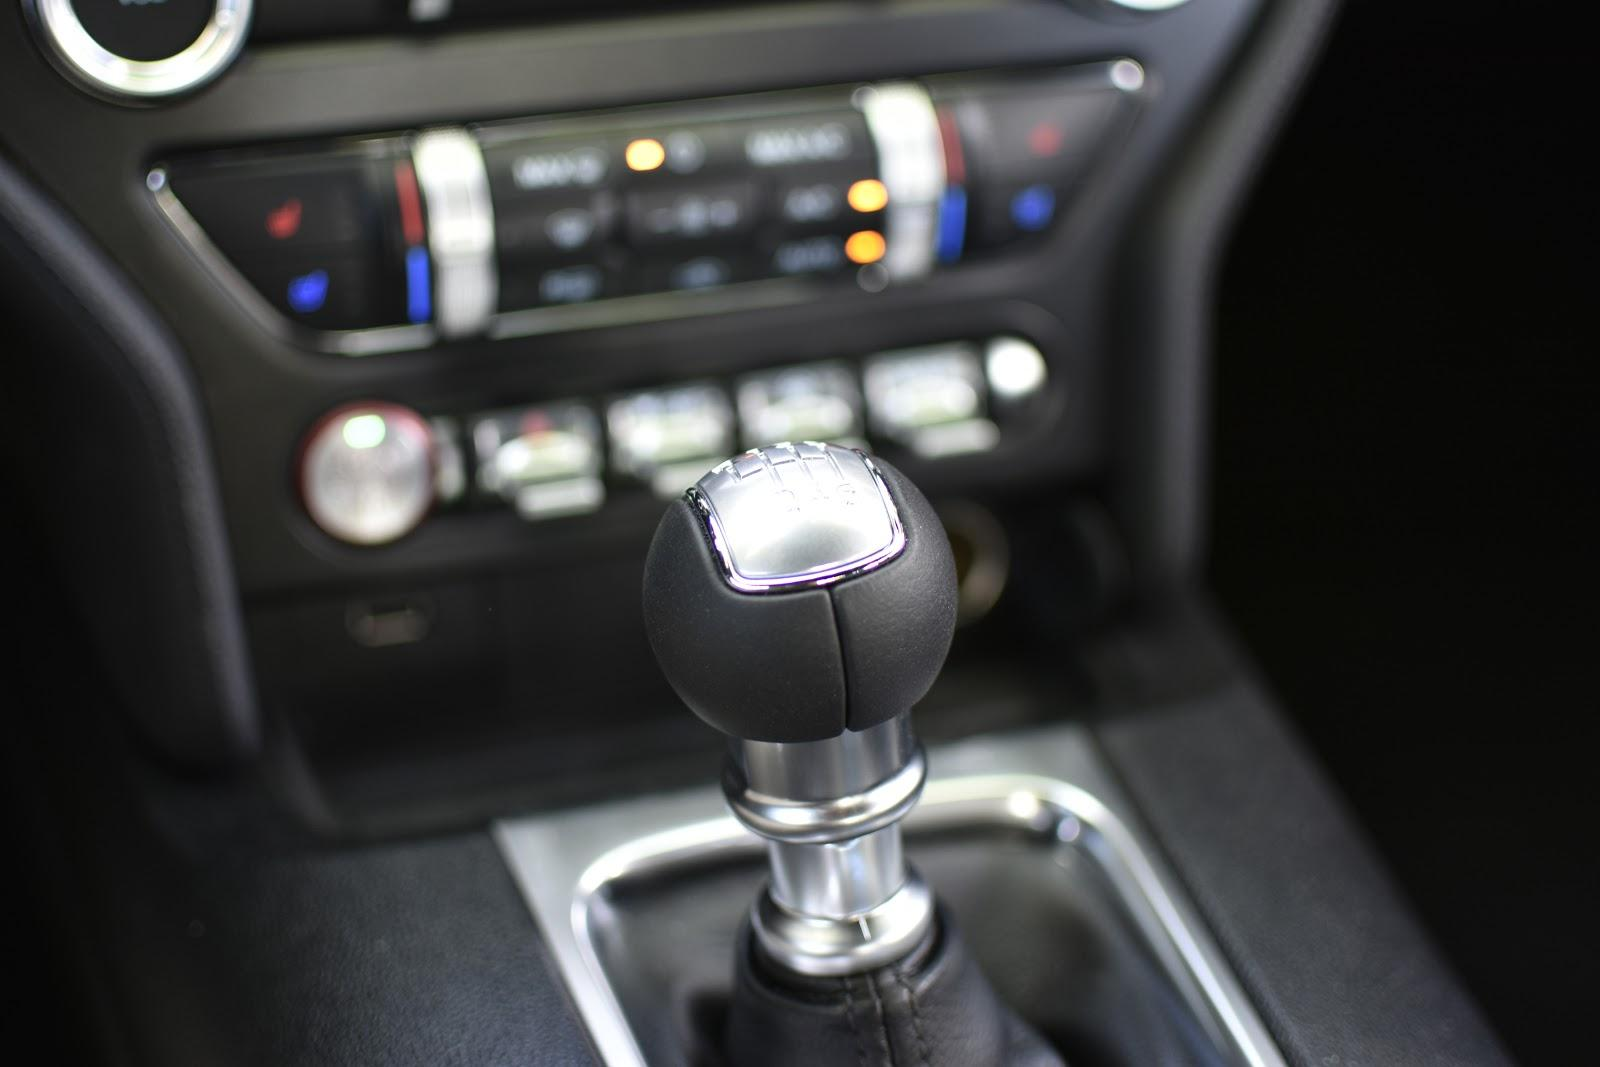 Gear shifter in centre console